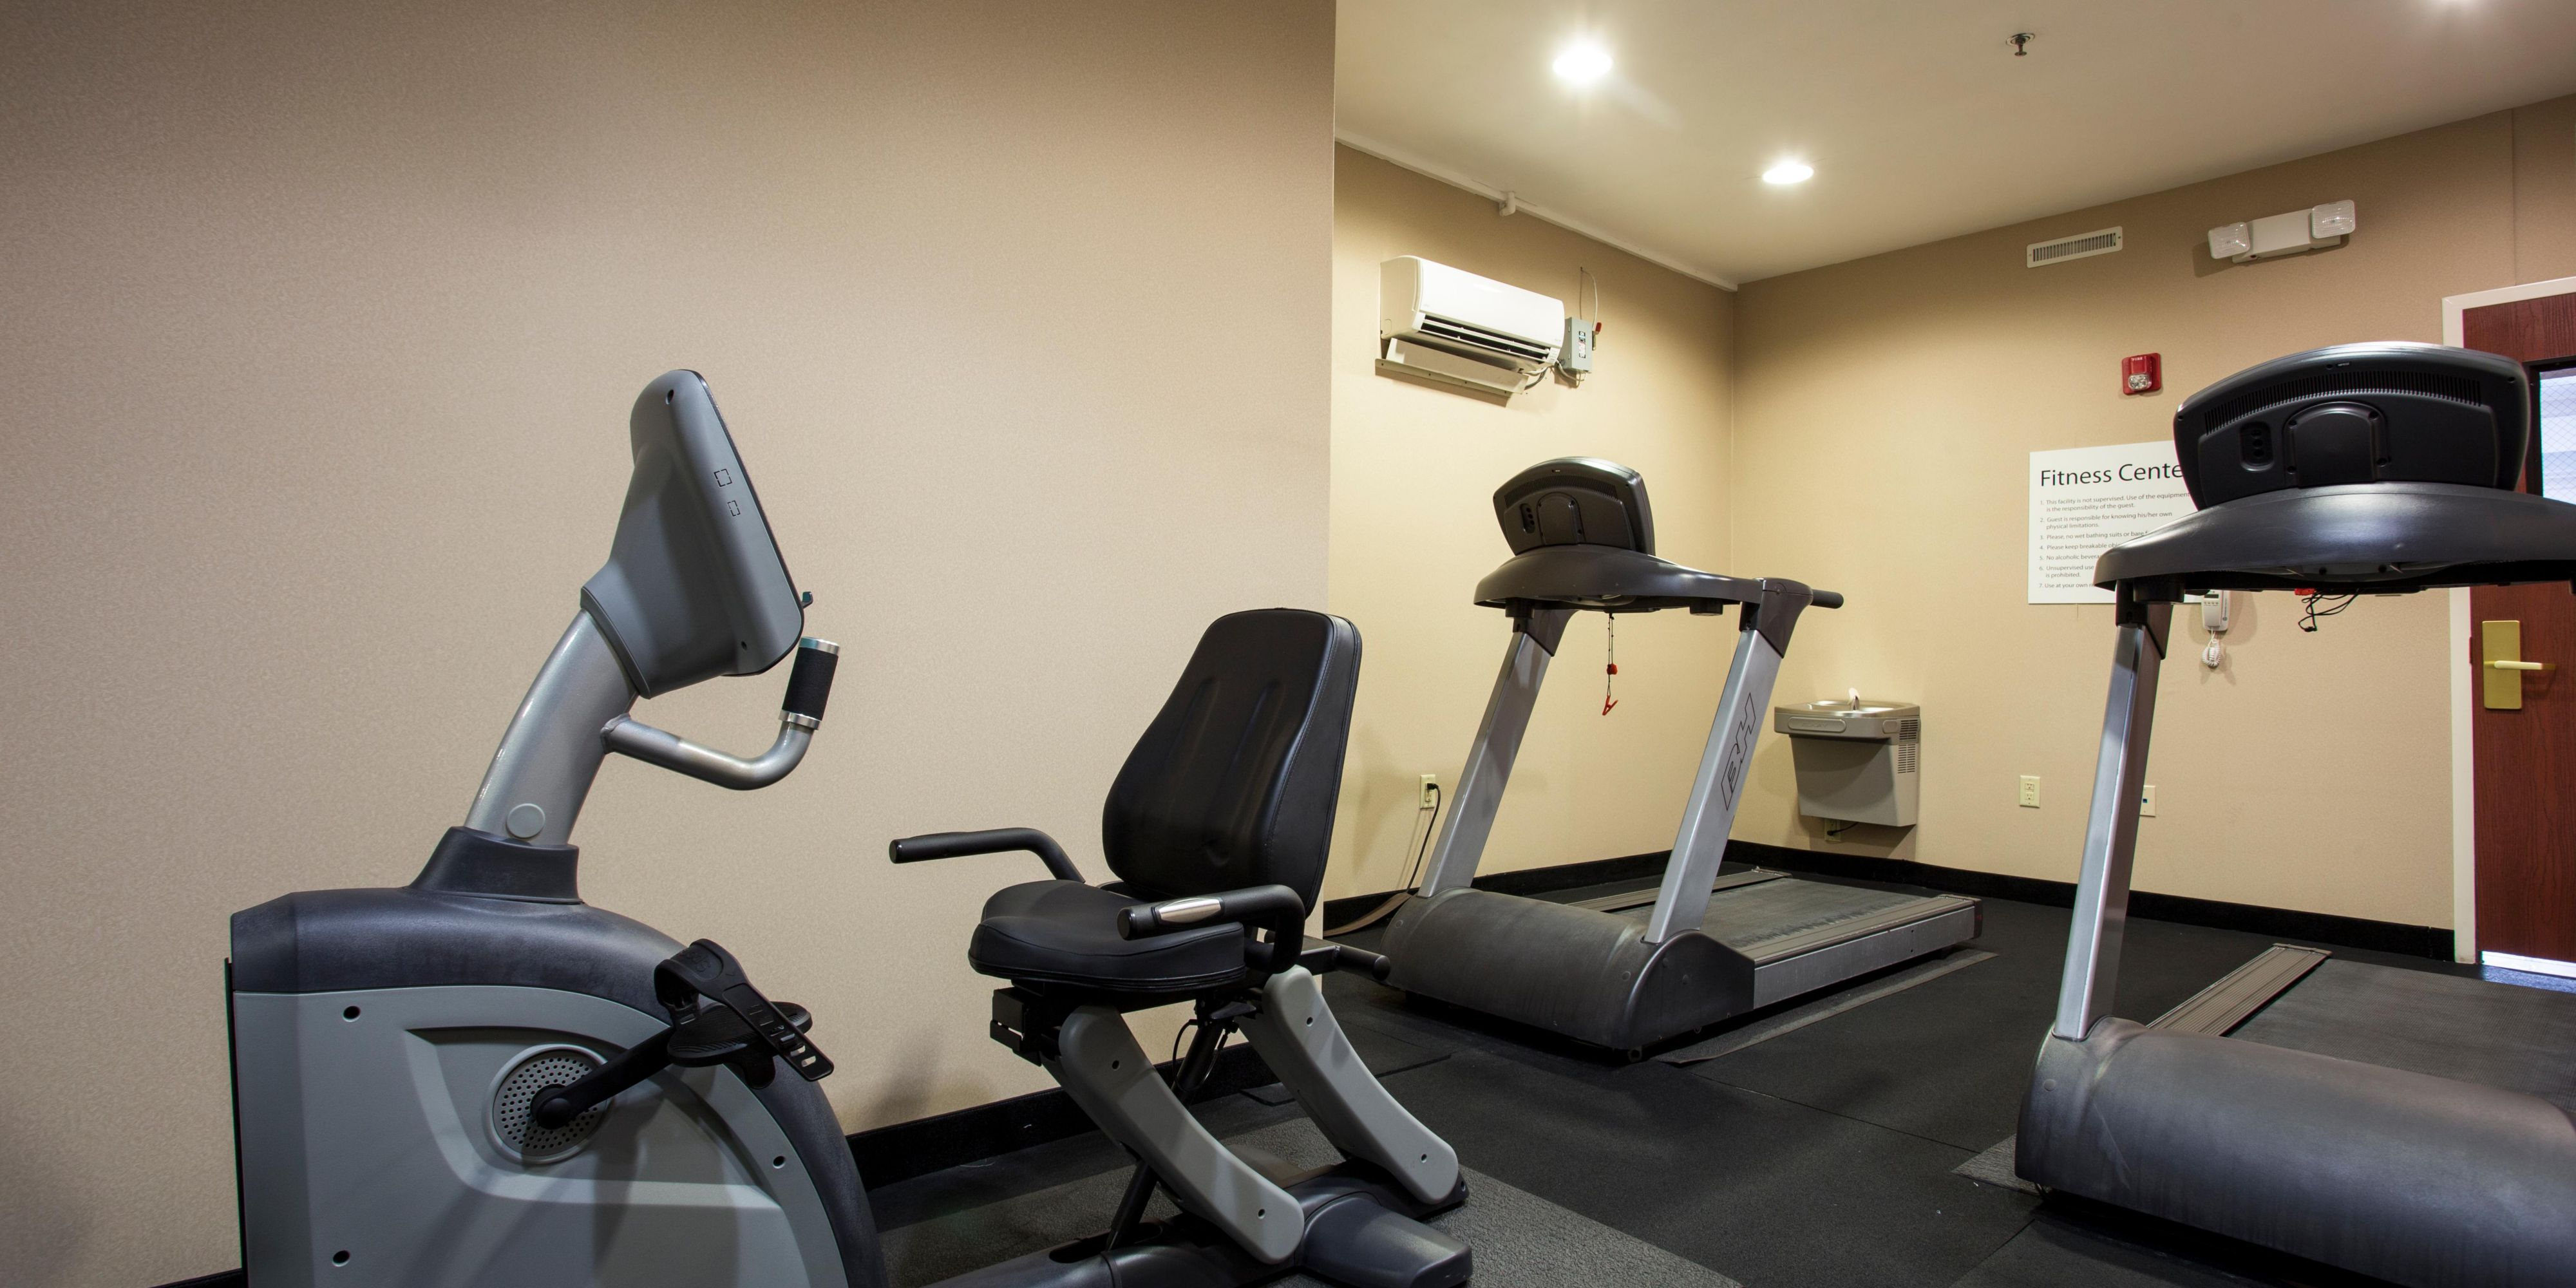 Holiday Inn Express And Suites Camden 4401226067 2x1